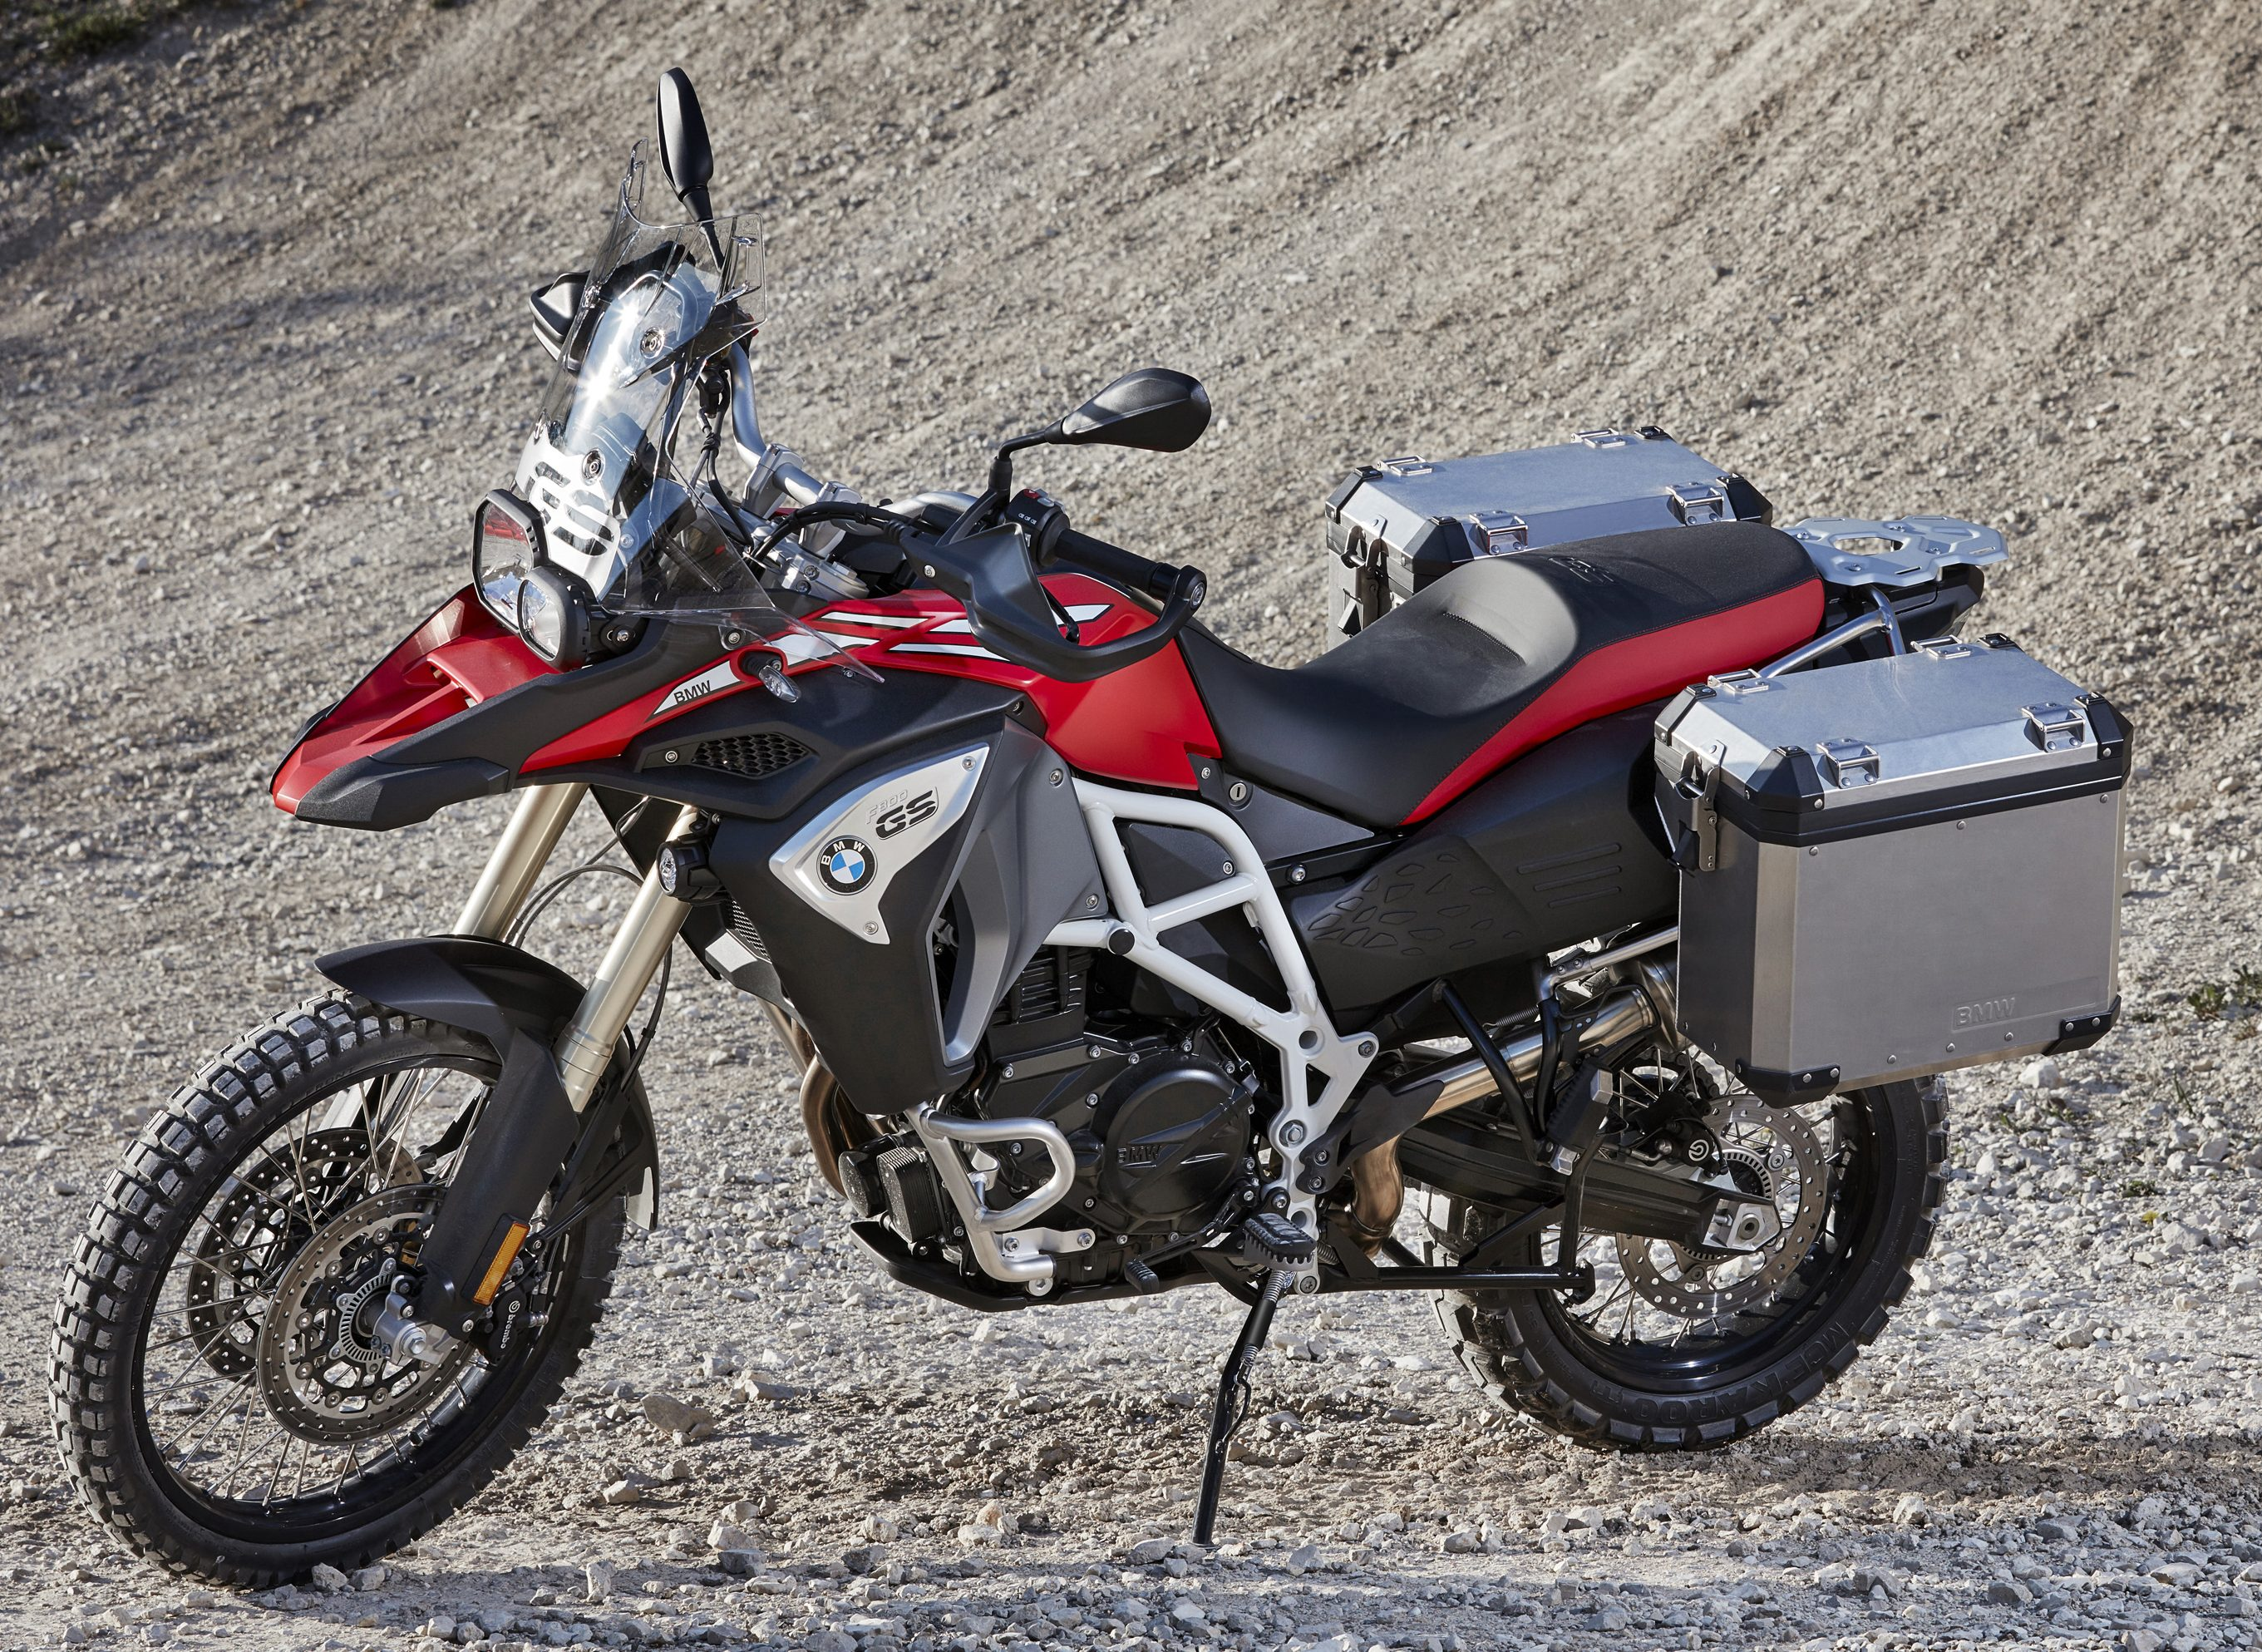 2017 bmw motorrad f700 gs f800 gs and f800 gs adventure euro 4 compliant now with ride modes. Black Bedroom Furniture Sets. Home Design Ideas